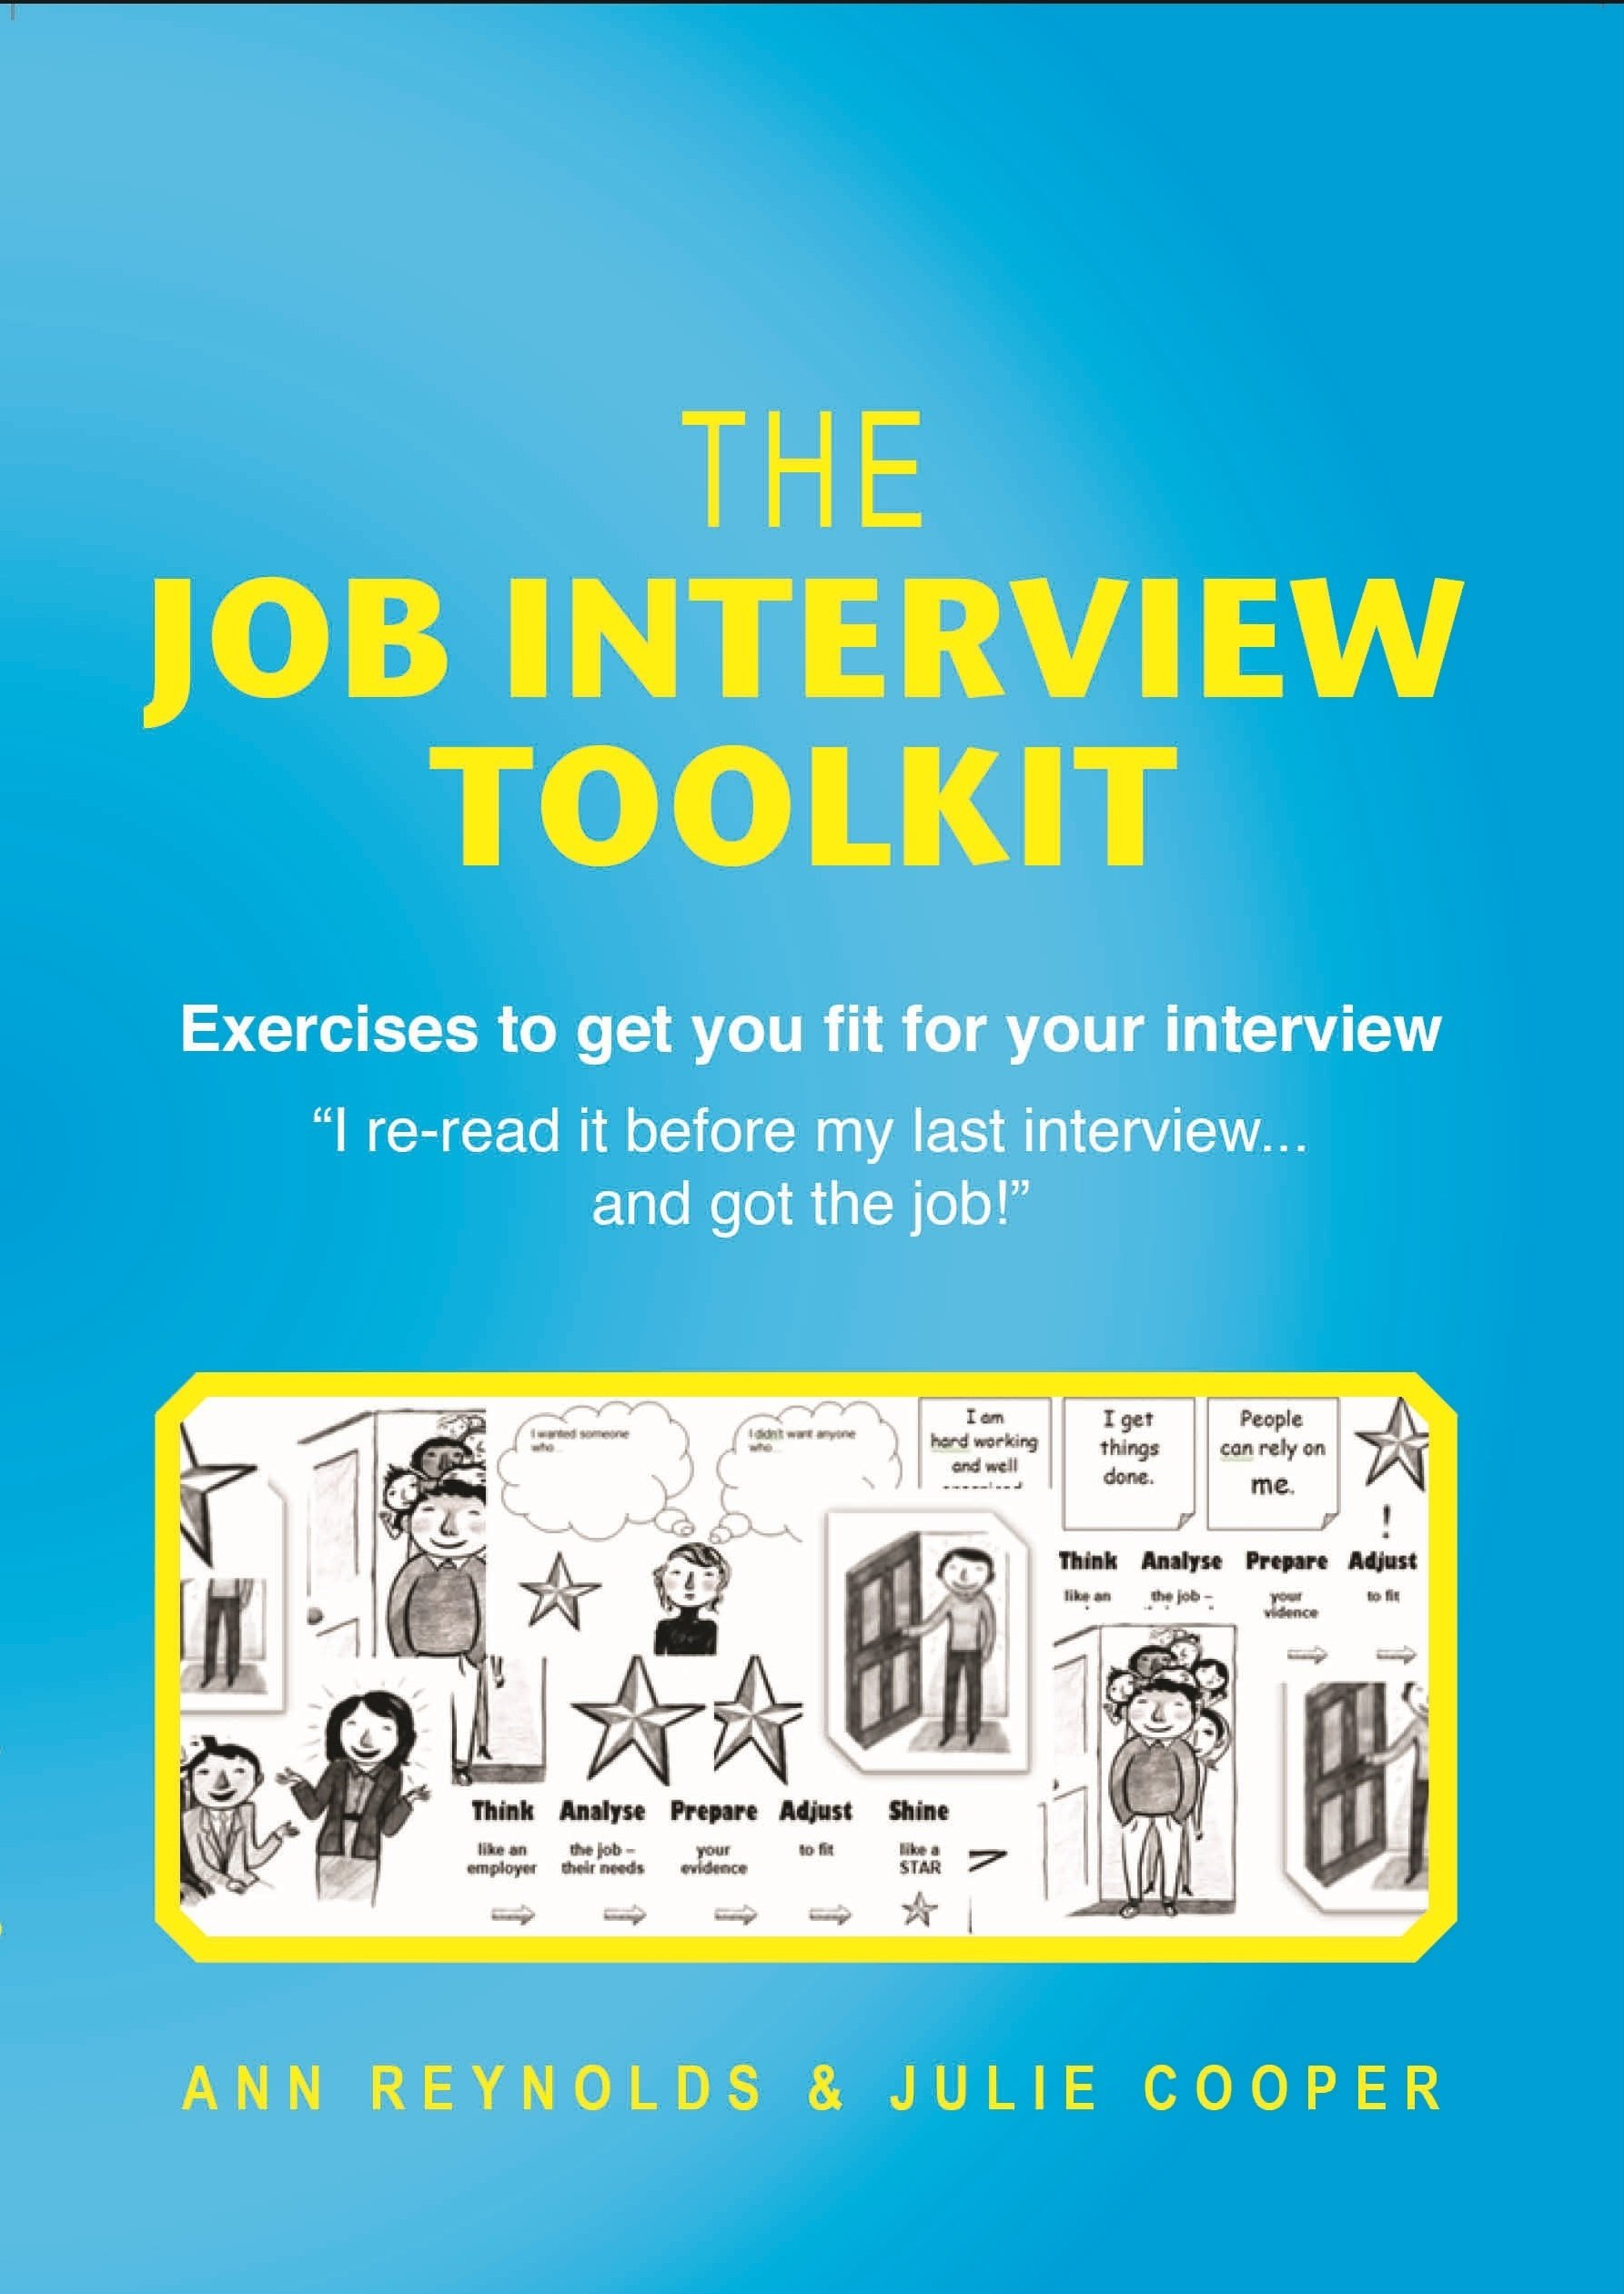 amazon com the job interview toolkit exercises to get you fit amazon com the job interview toolkit exercises to get you fit for your interview 9780955968020 ann e reynolds julie cooper becky gilbey books